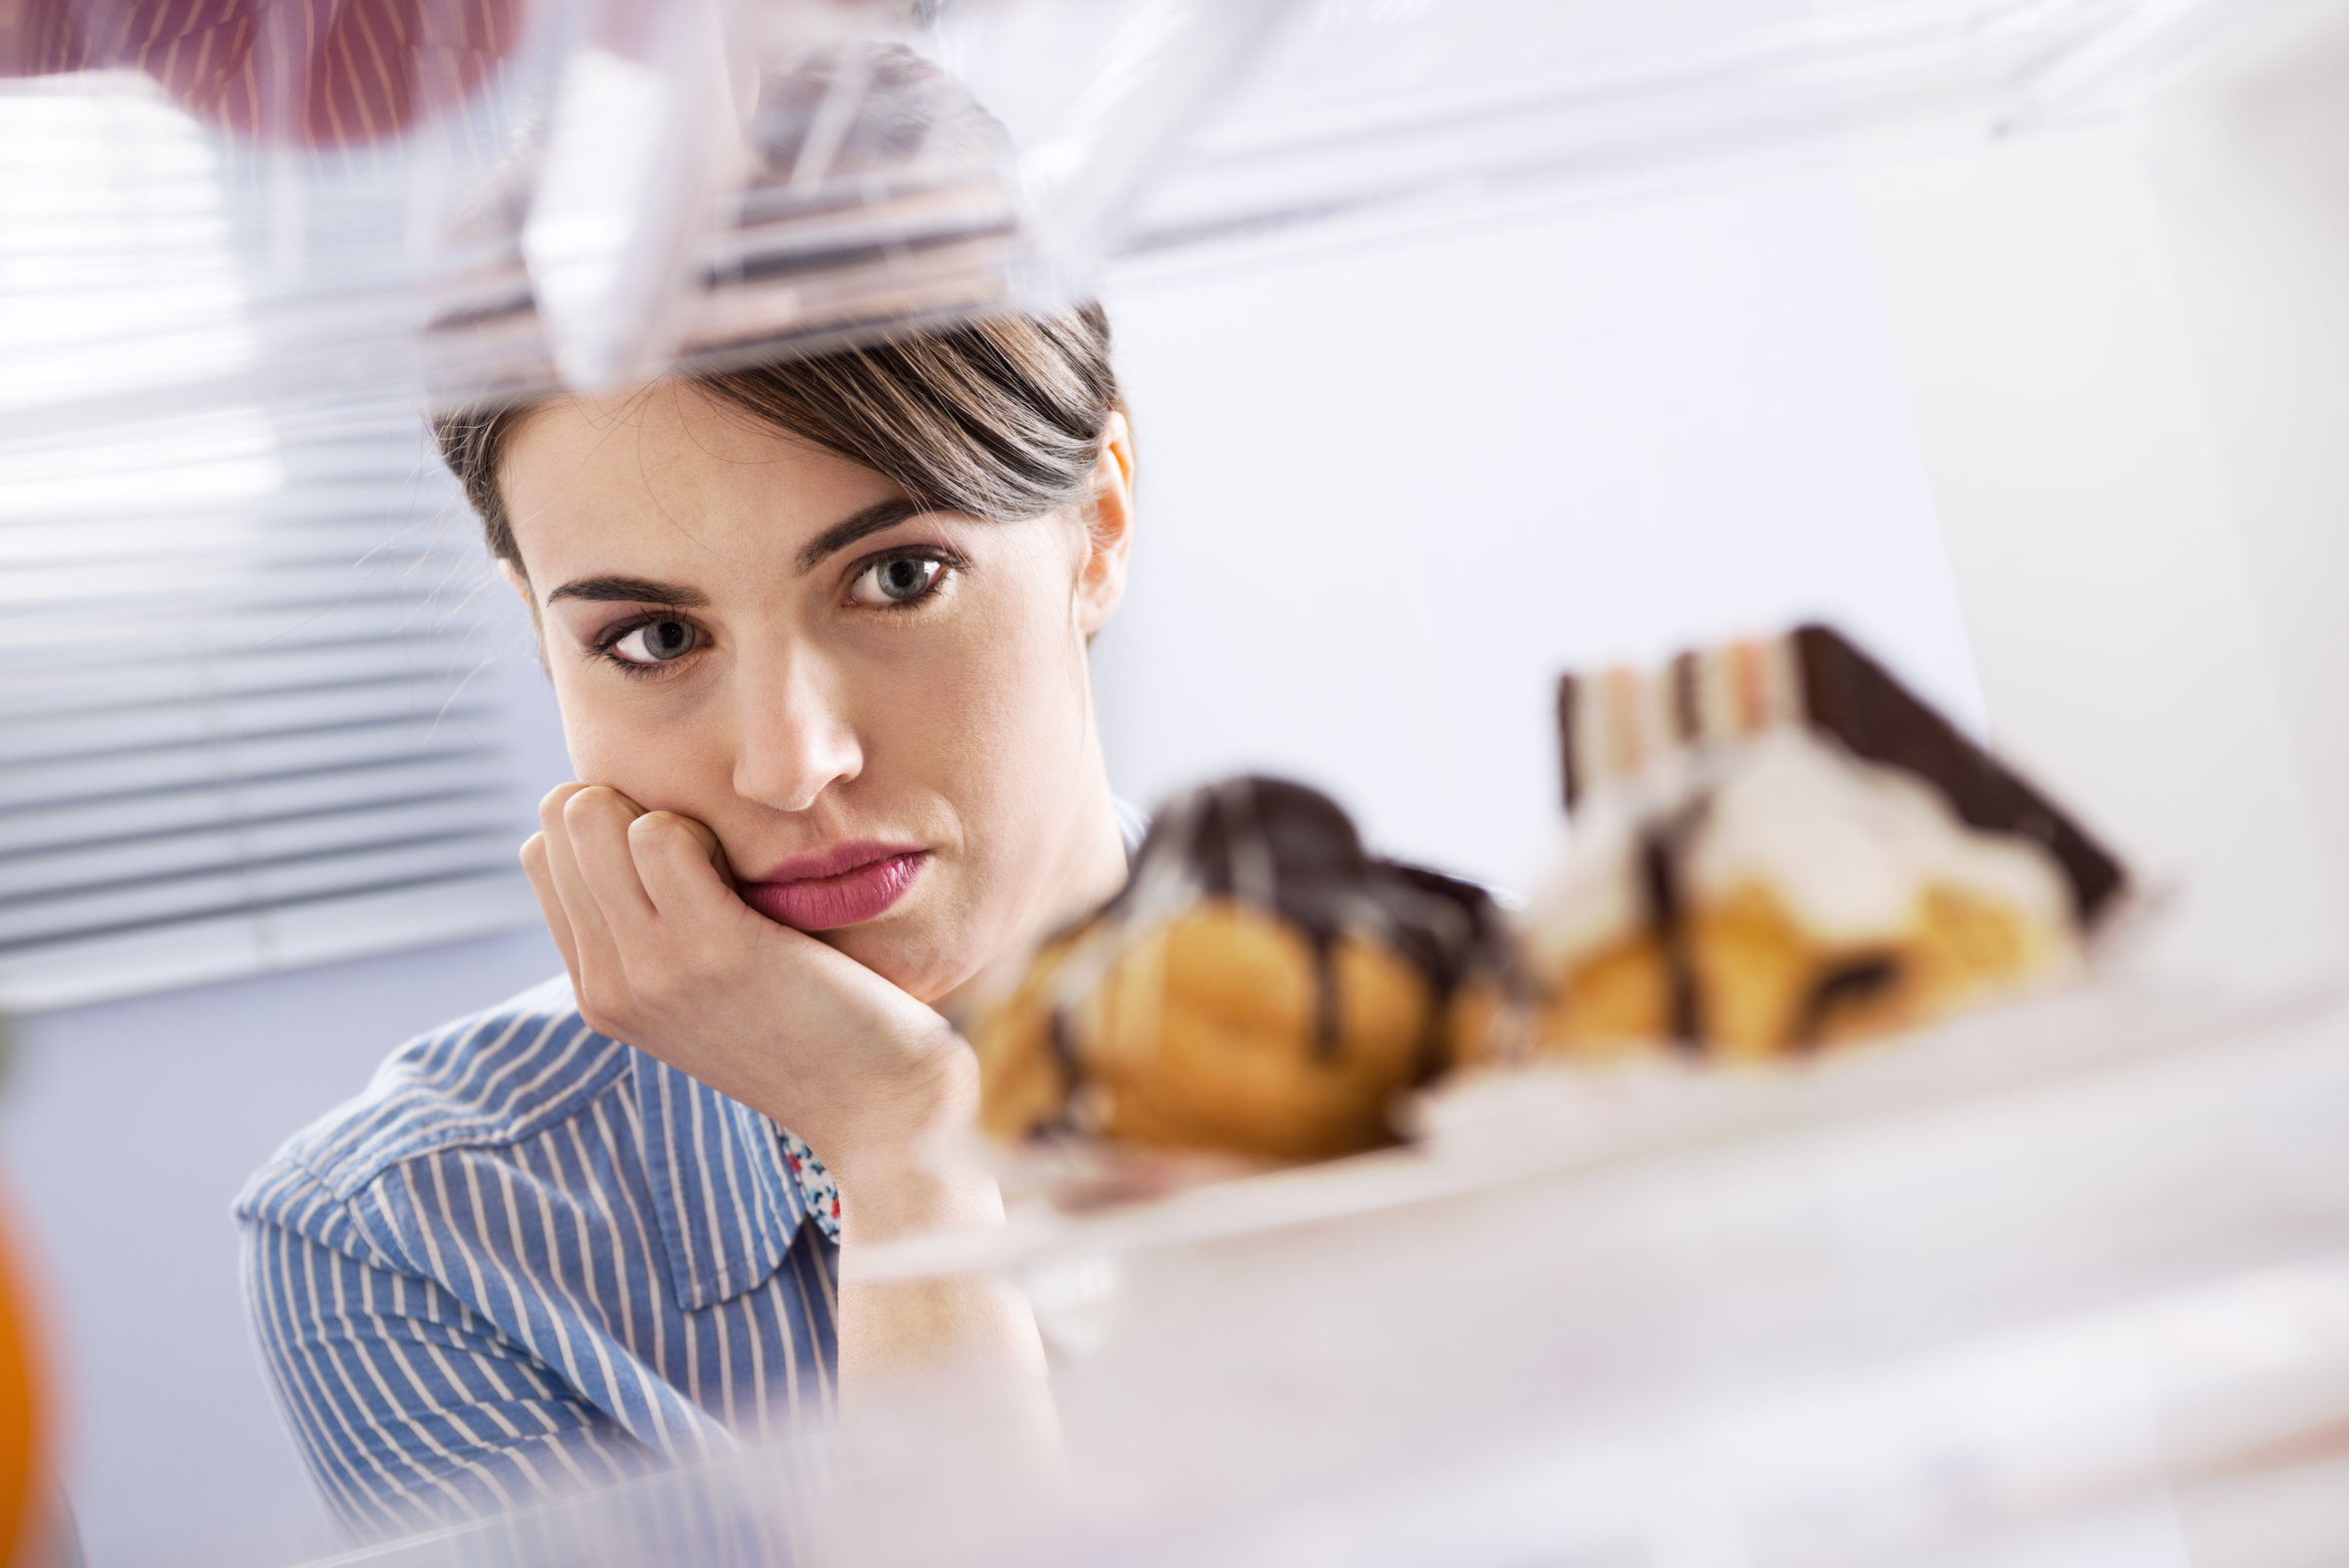 Researchers at Columbia University have found that our sweet food cravings may be completely eliminated by manipulating a region of the brain which regulates emotions